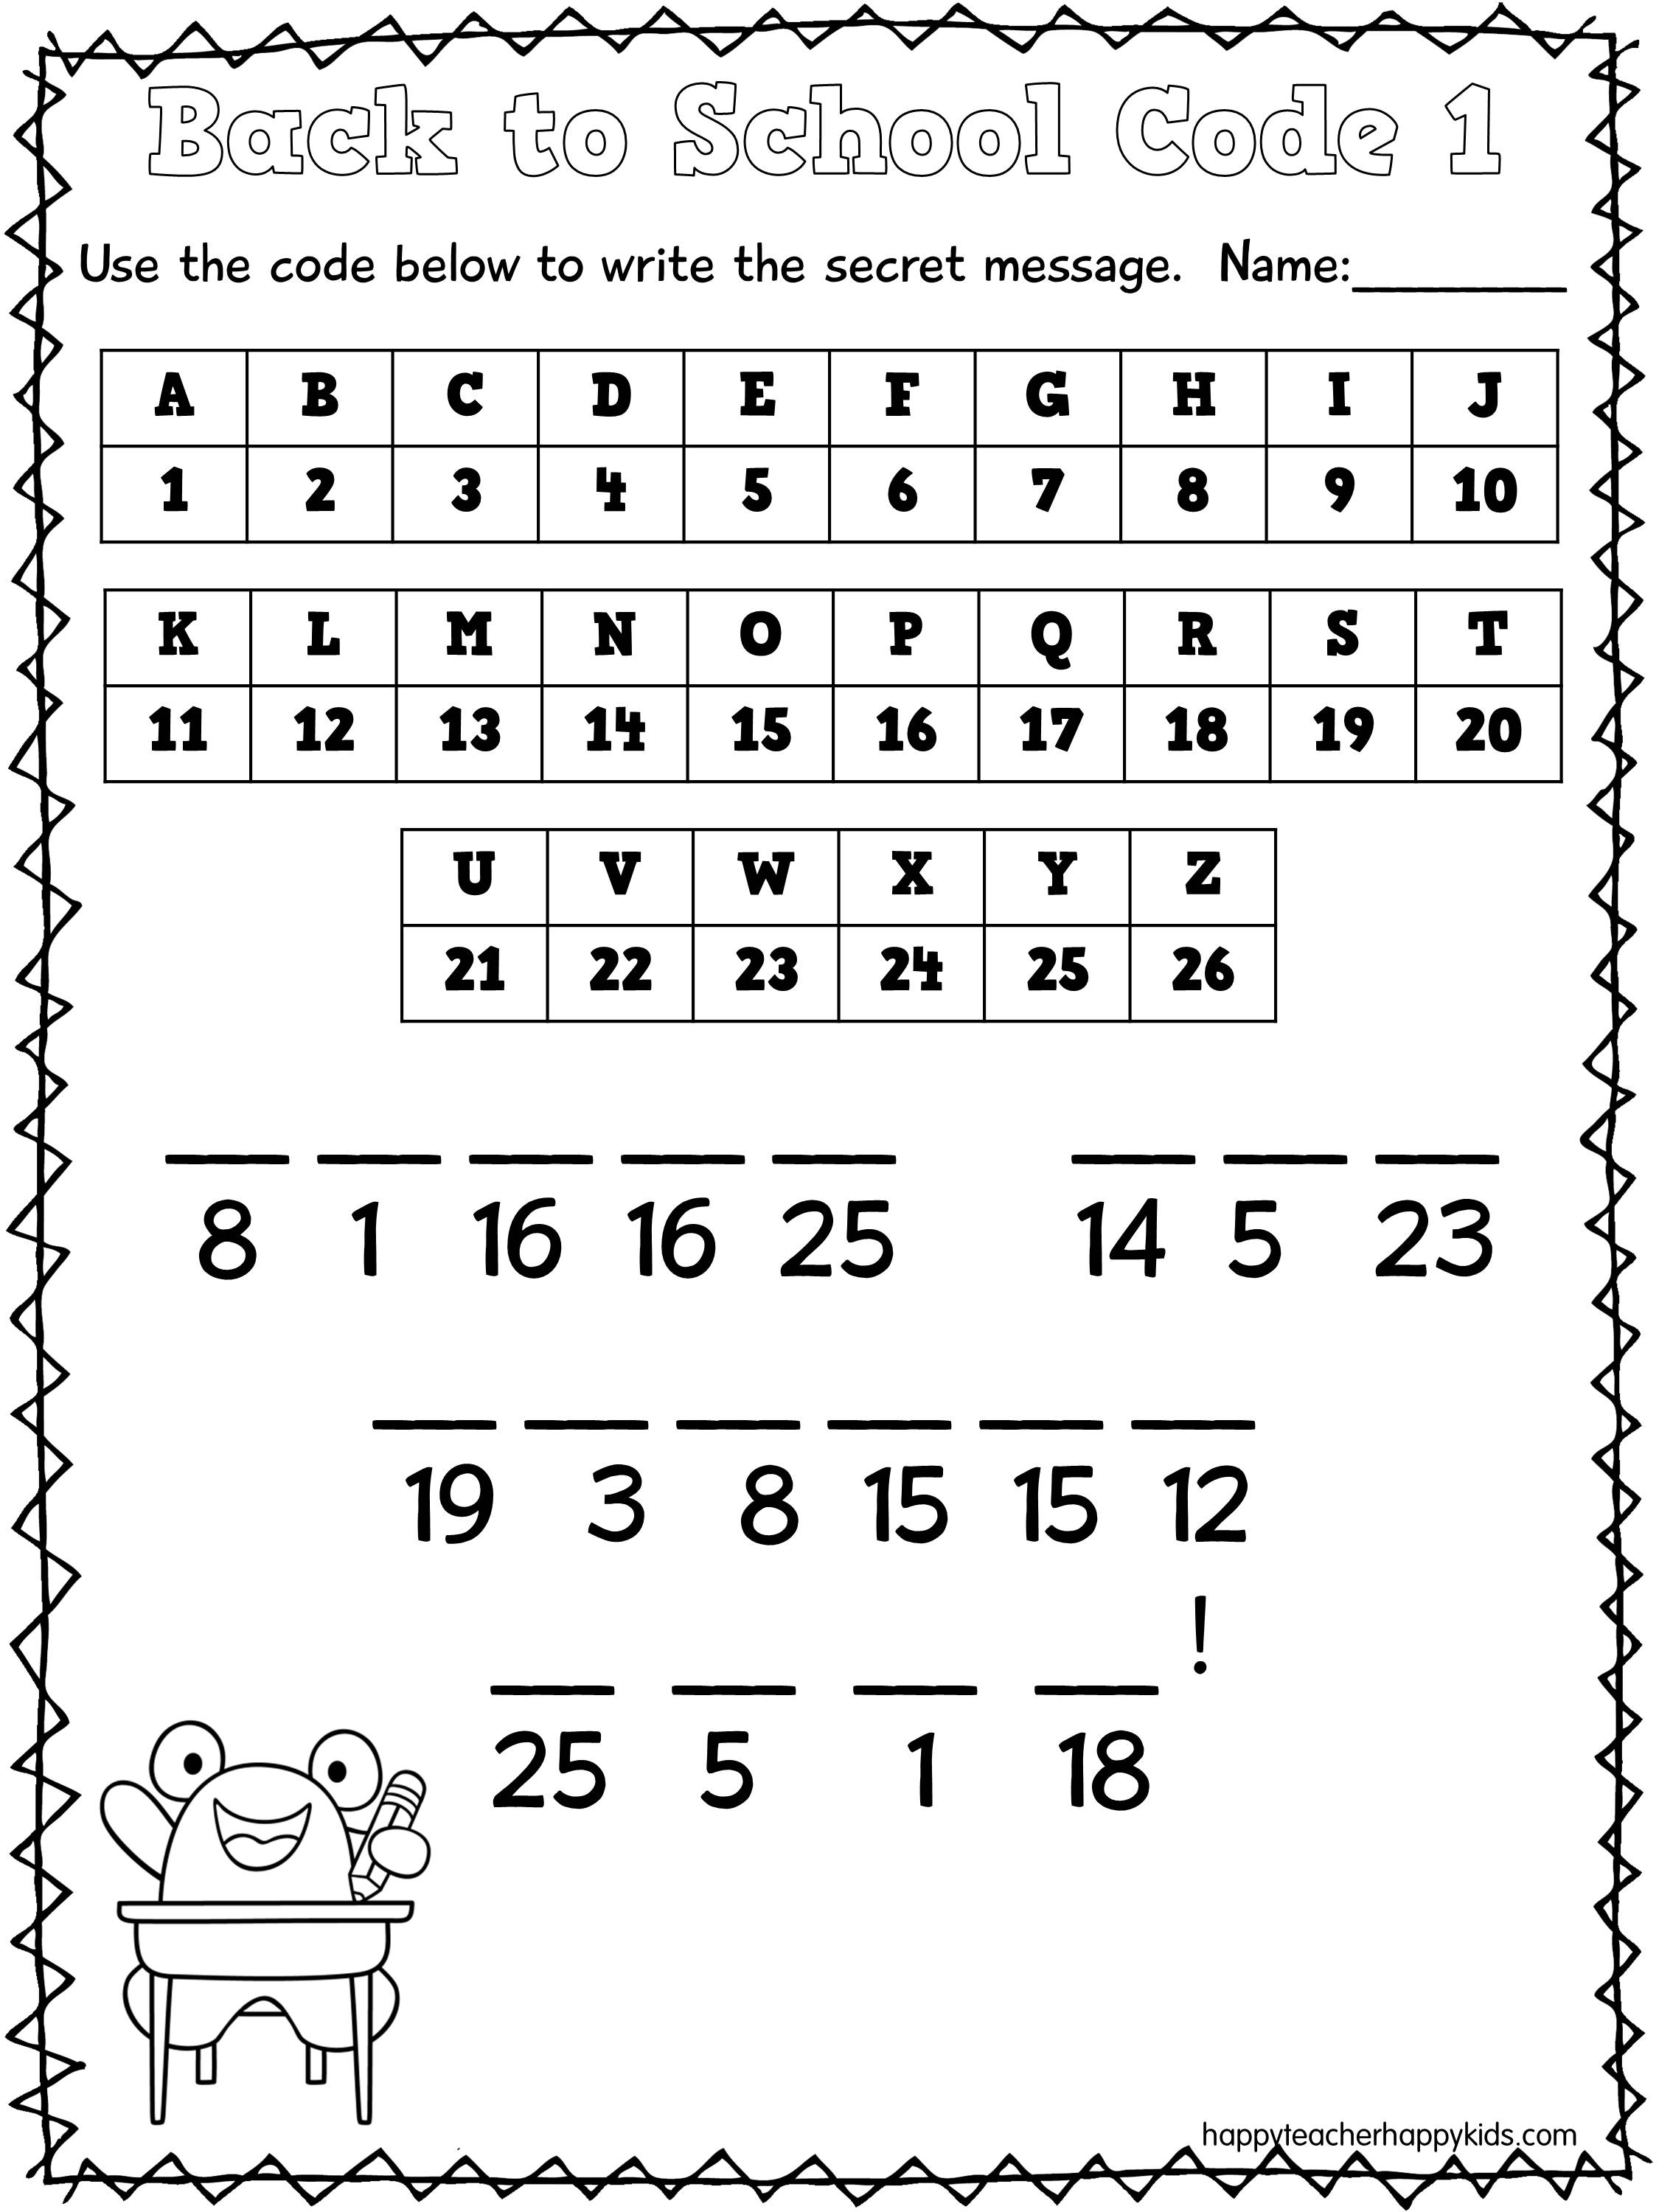 12 Best Images Of Secret Code Worksheets